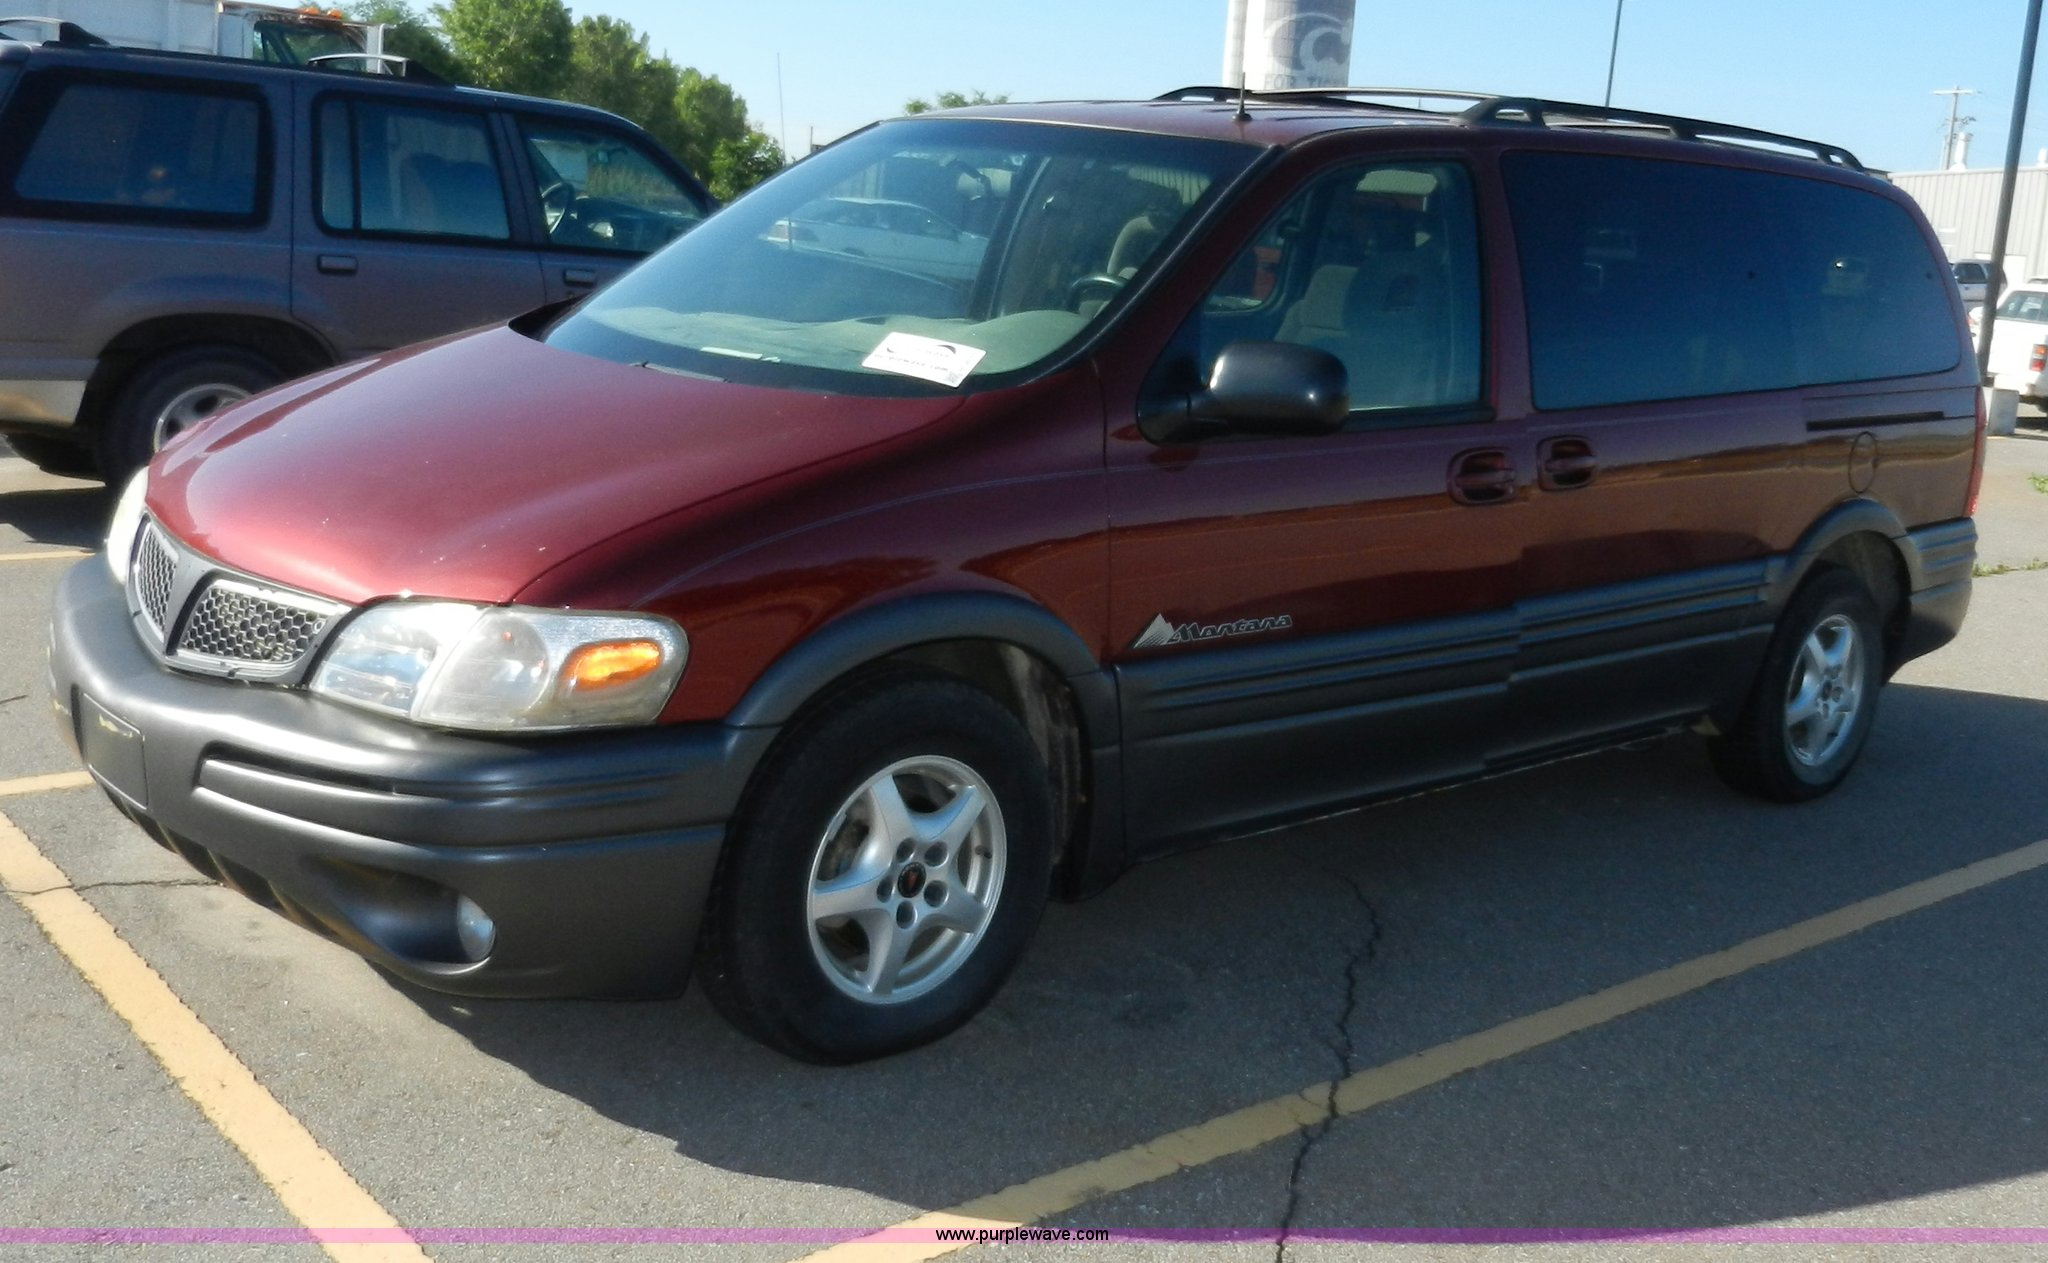 2001 pontiac montana van in manhattan ks item h3075 sold purple wave 2001 pontiac montana van in manhattan